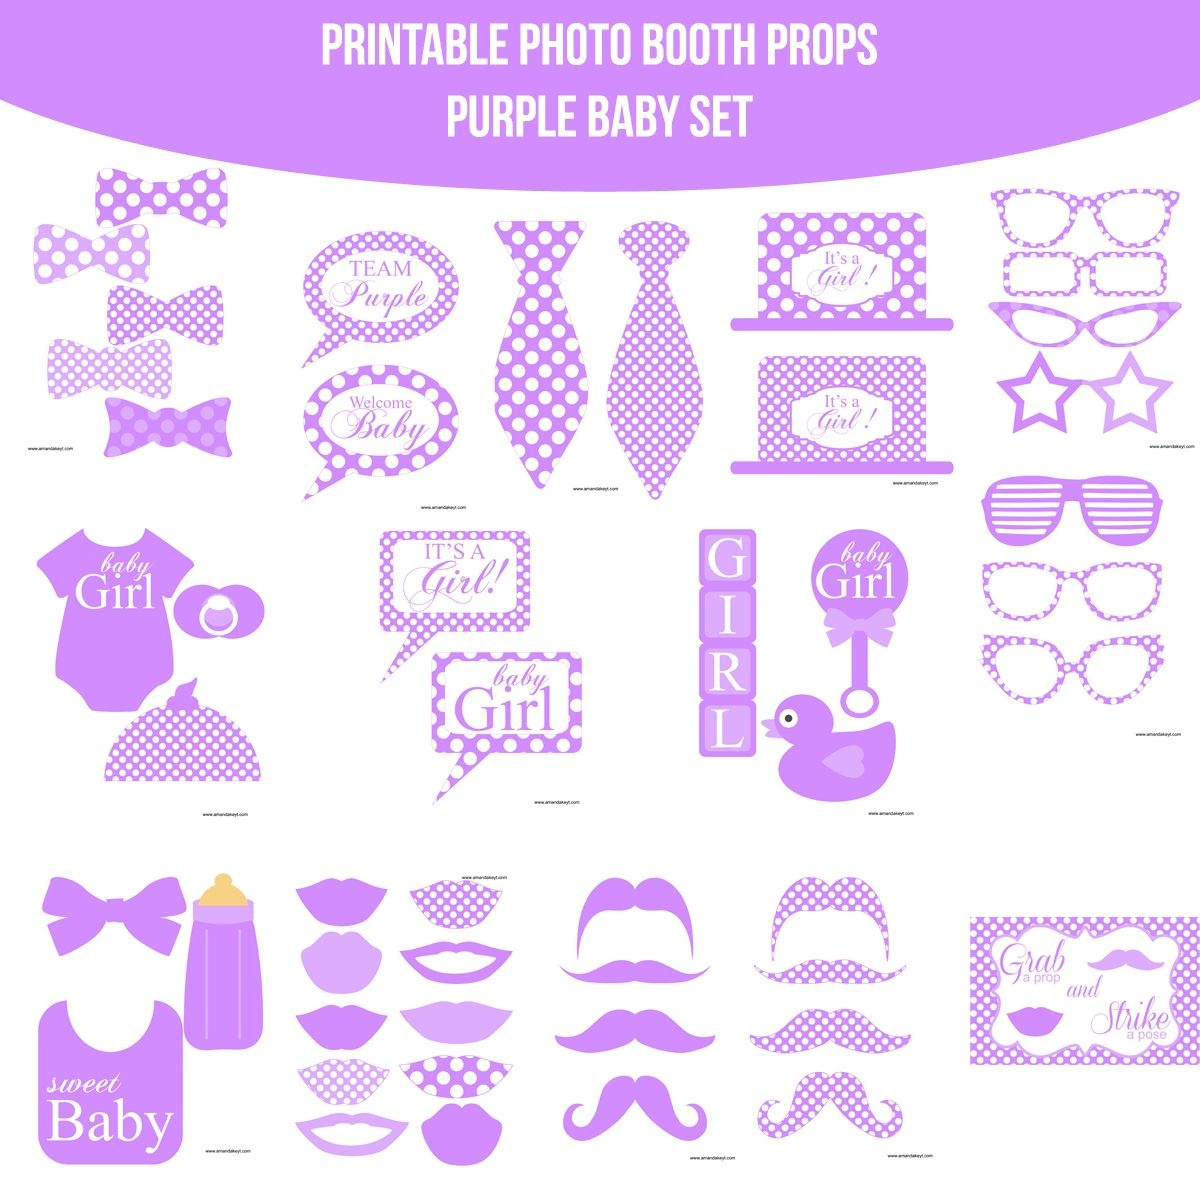 Instant Download Baby Purple Printable Photo Booth Prop Set | Baby - Free Printable Baby Shower Photo Booth Props